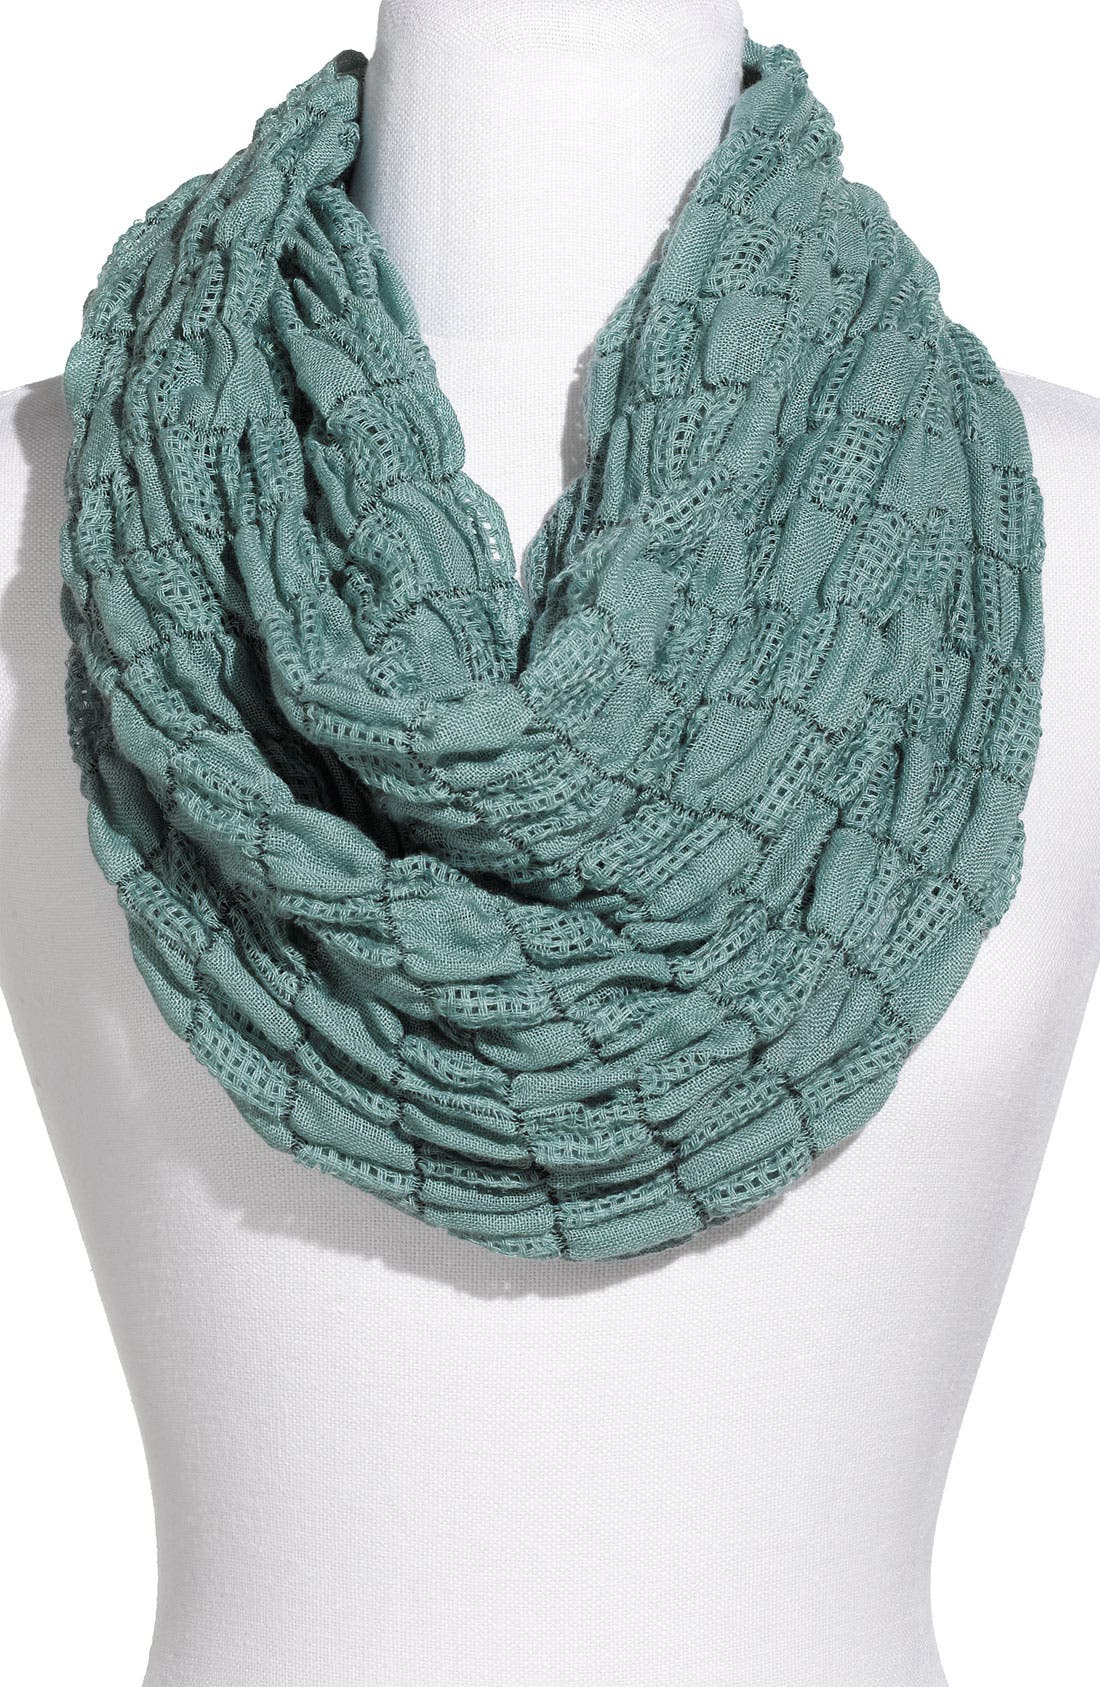 Alternate Image 1 Selected - Rubbish® Textured Check Infinity Scarf